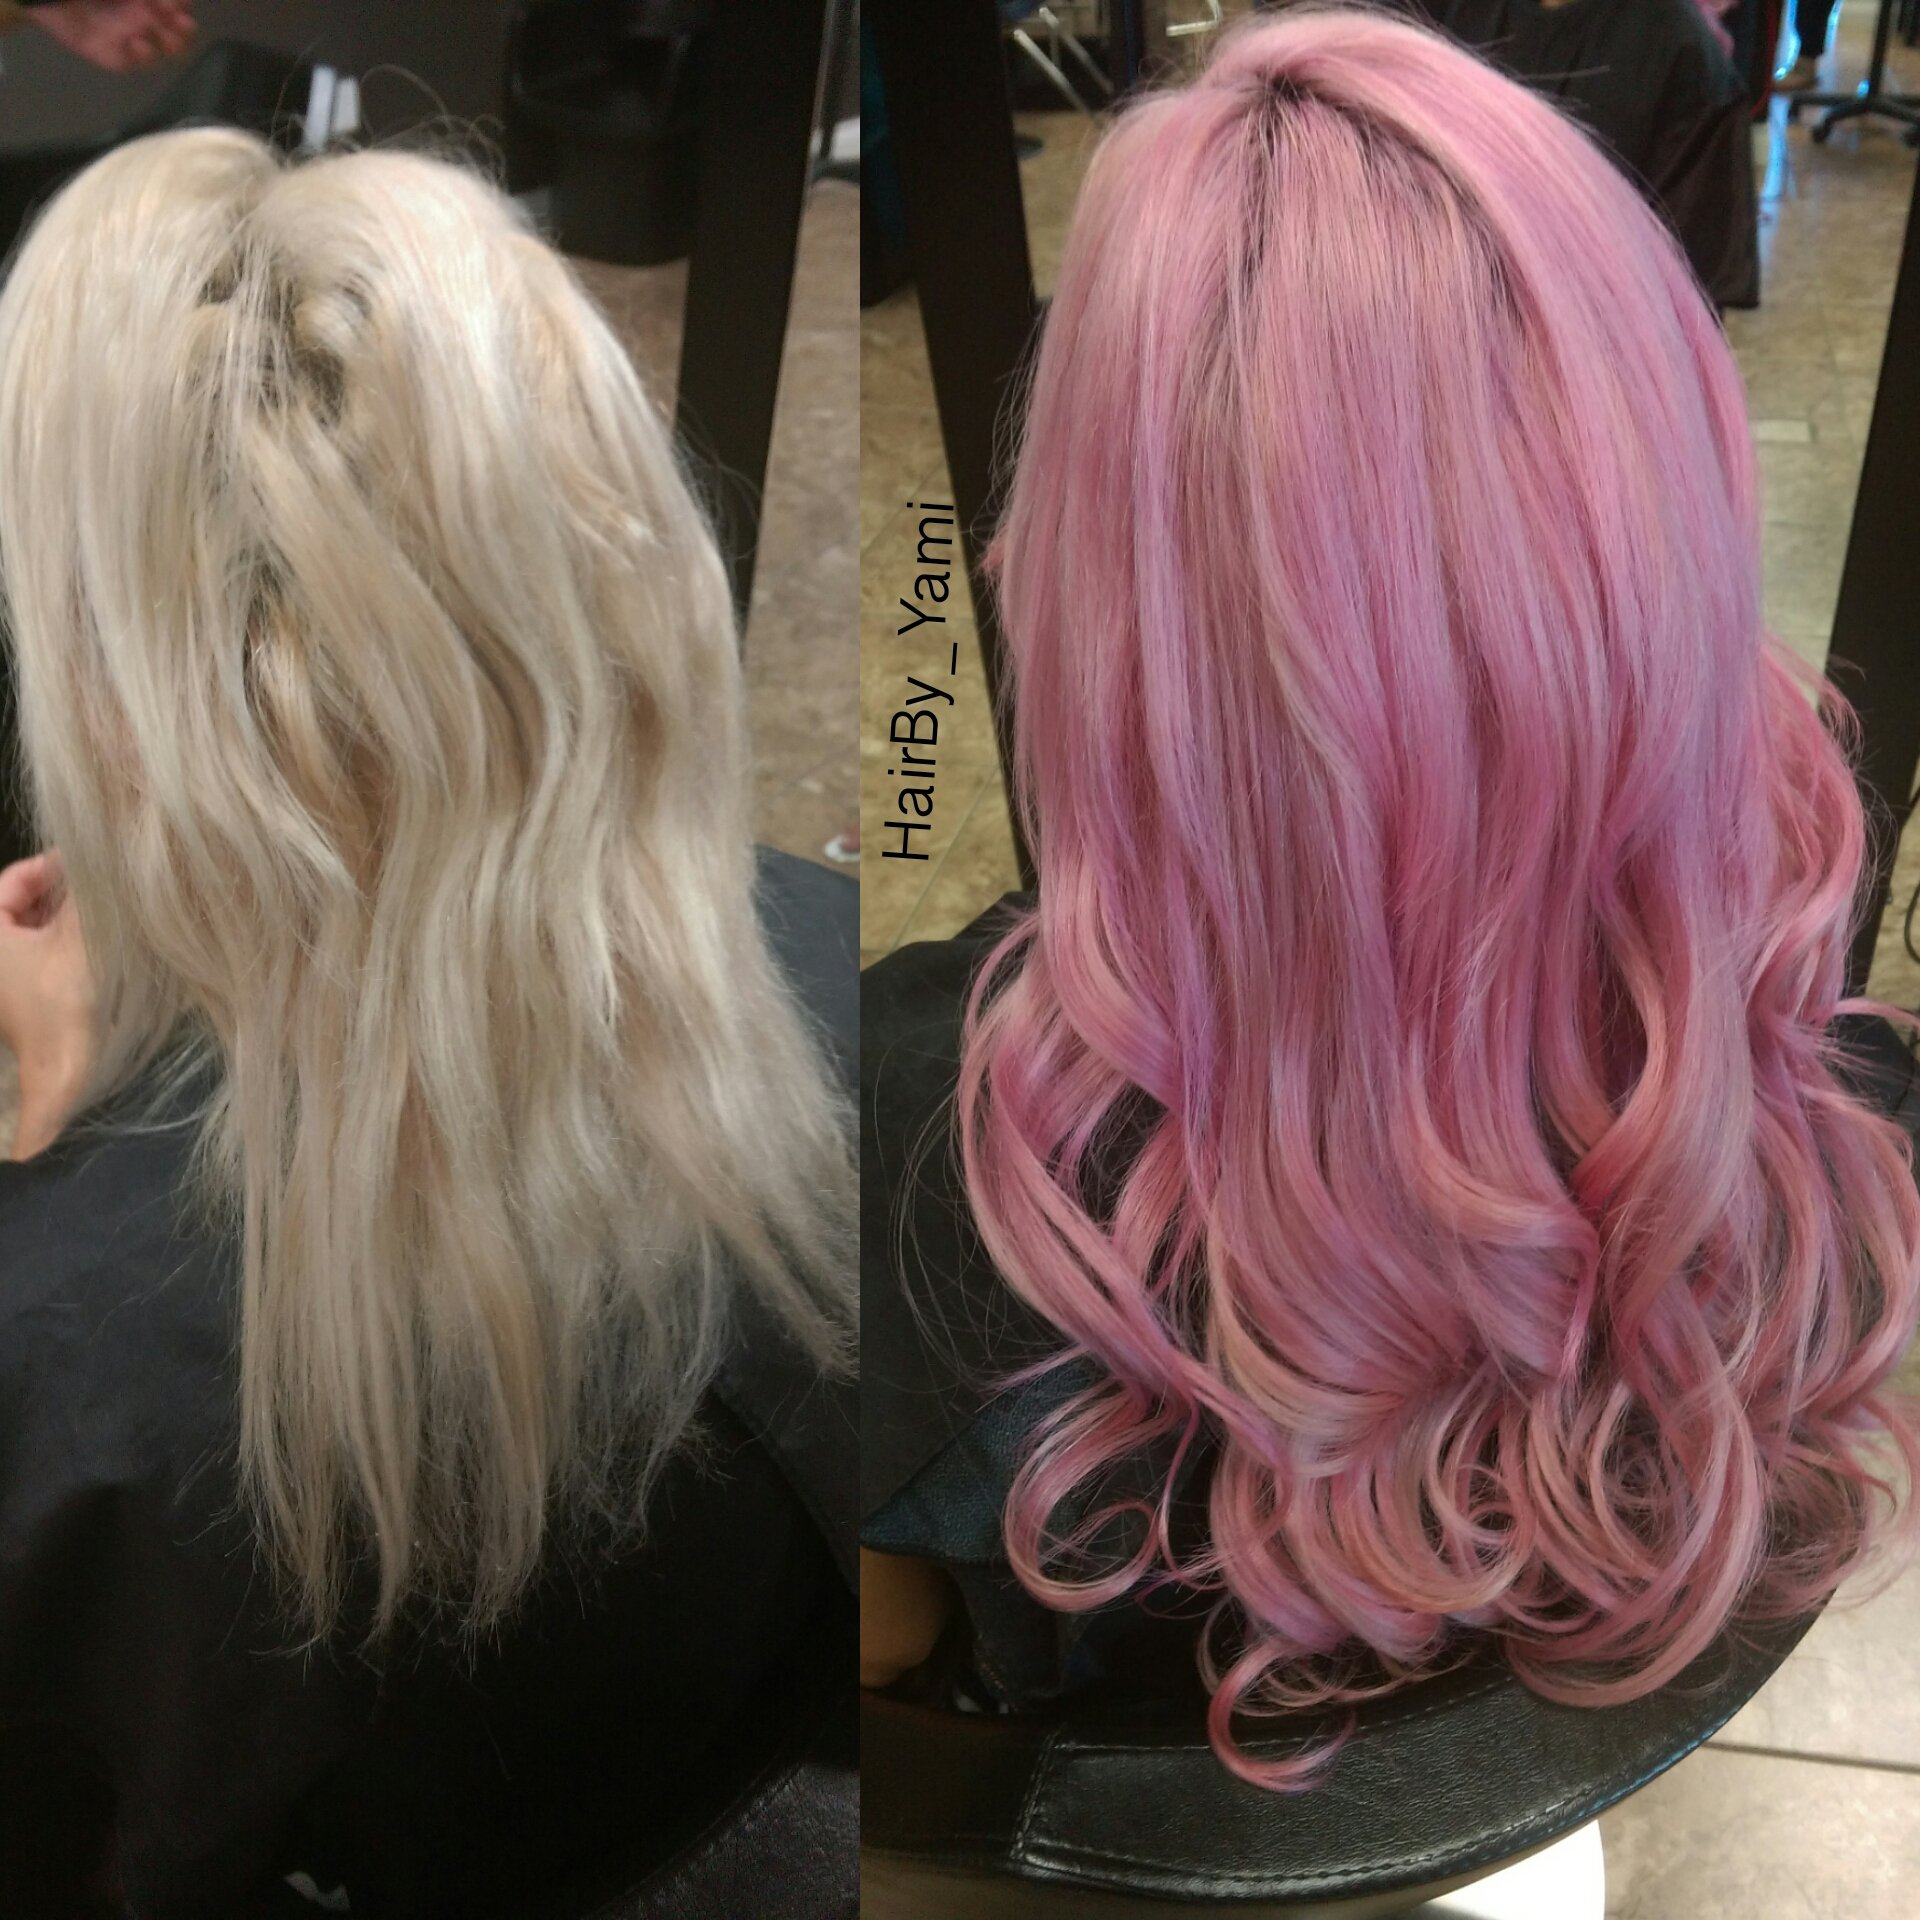 TRANSFORMATION: Color and Extensions To The Rescue